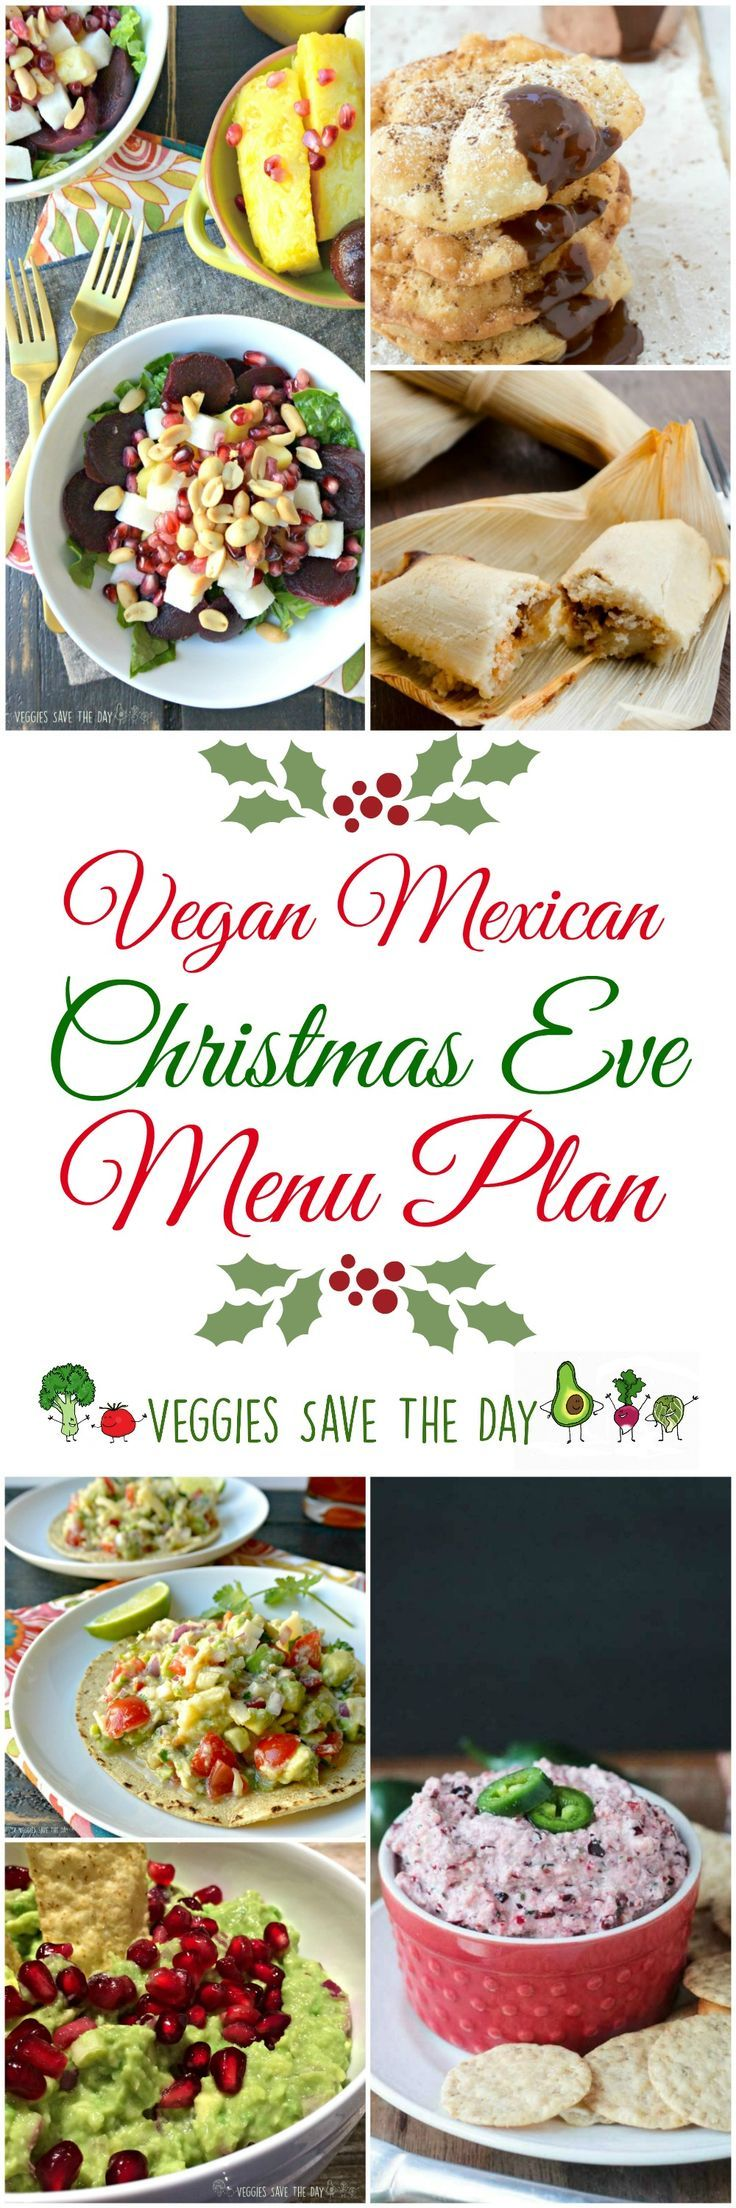 Celebrate the holidays California-style with this easy Vegan Mexican Christmas Eve menu plan featuring vegan tamales and colorful festive side dishes.